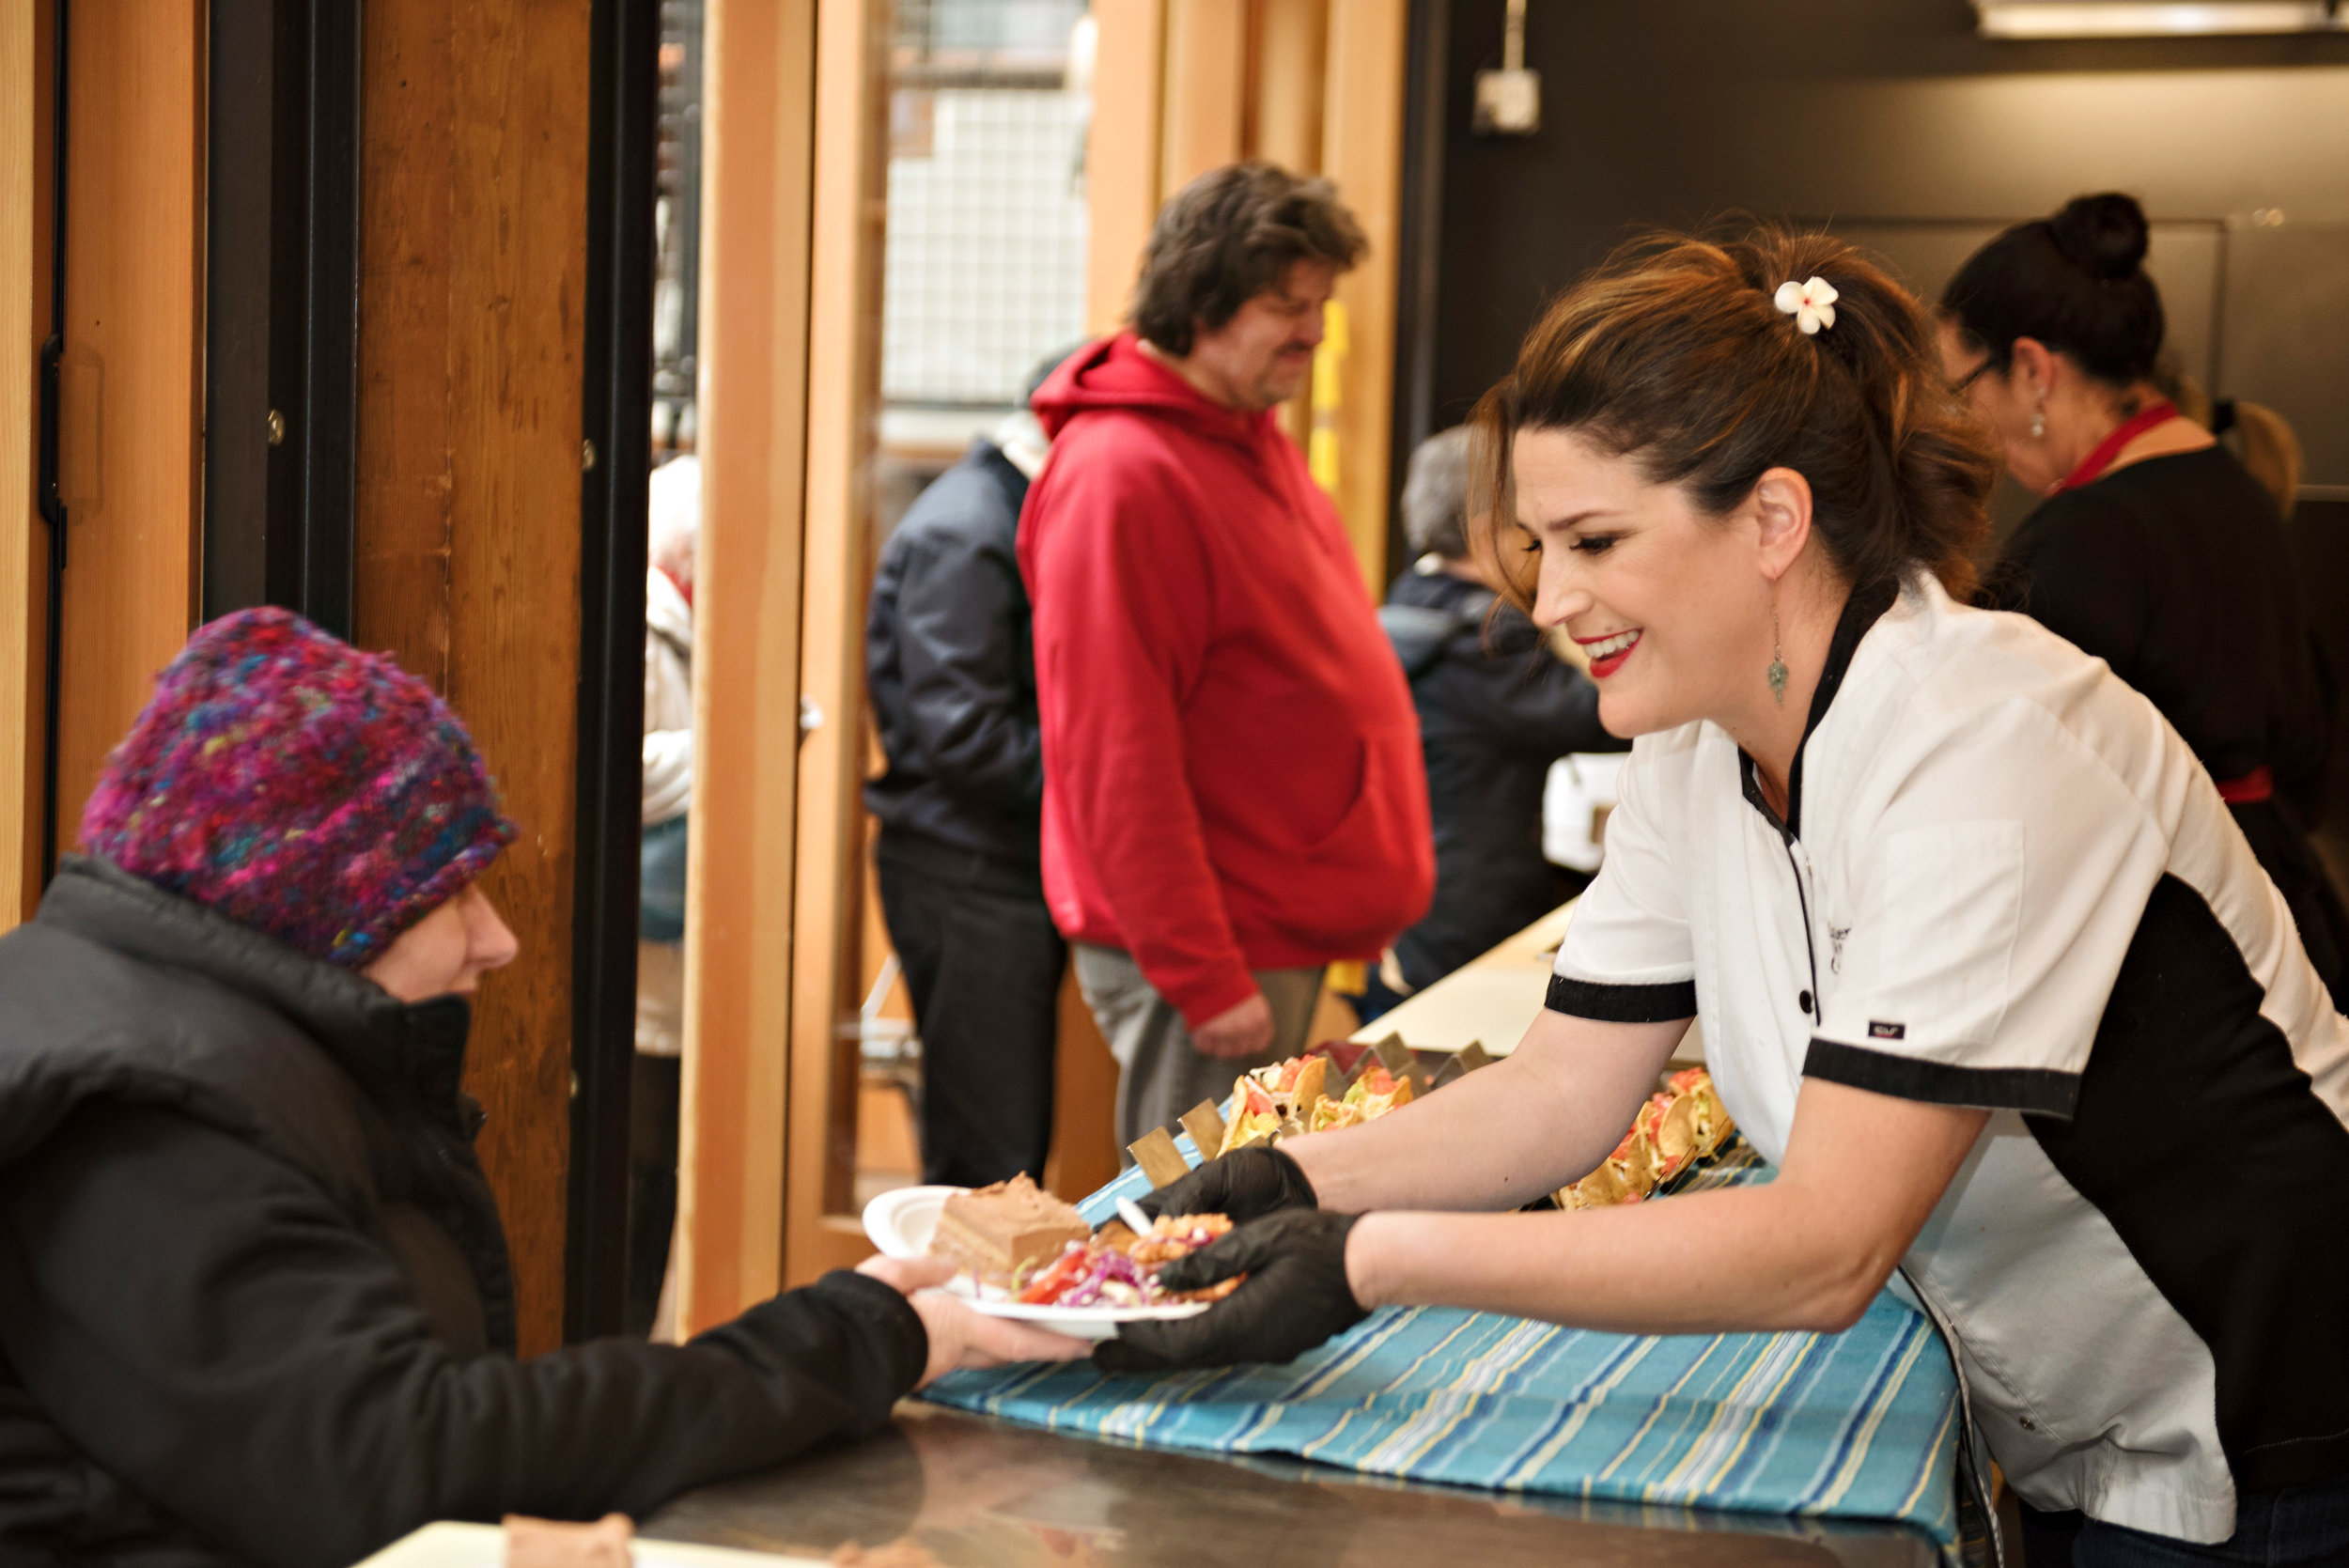 Chef Traci Calderon feeding our community at Atrium Kitchen at Pike Place Market